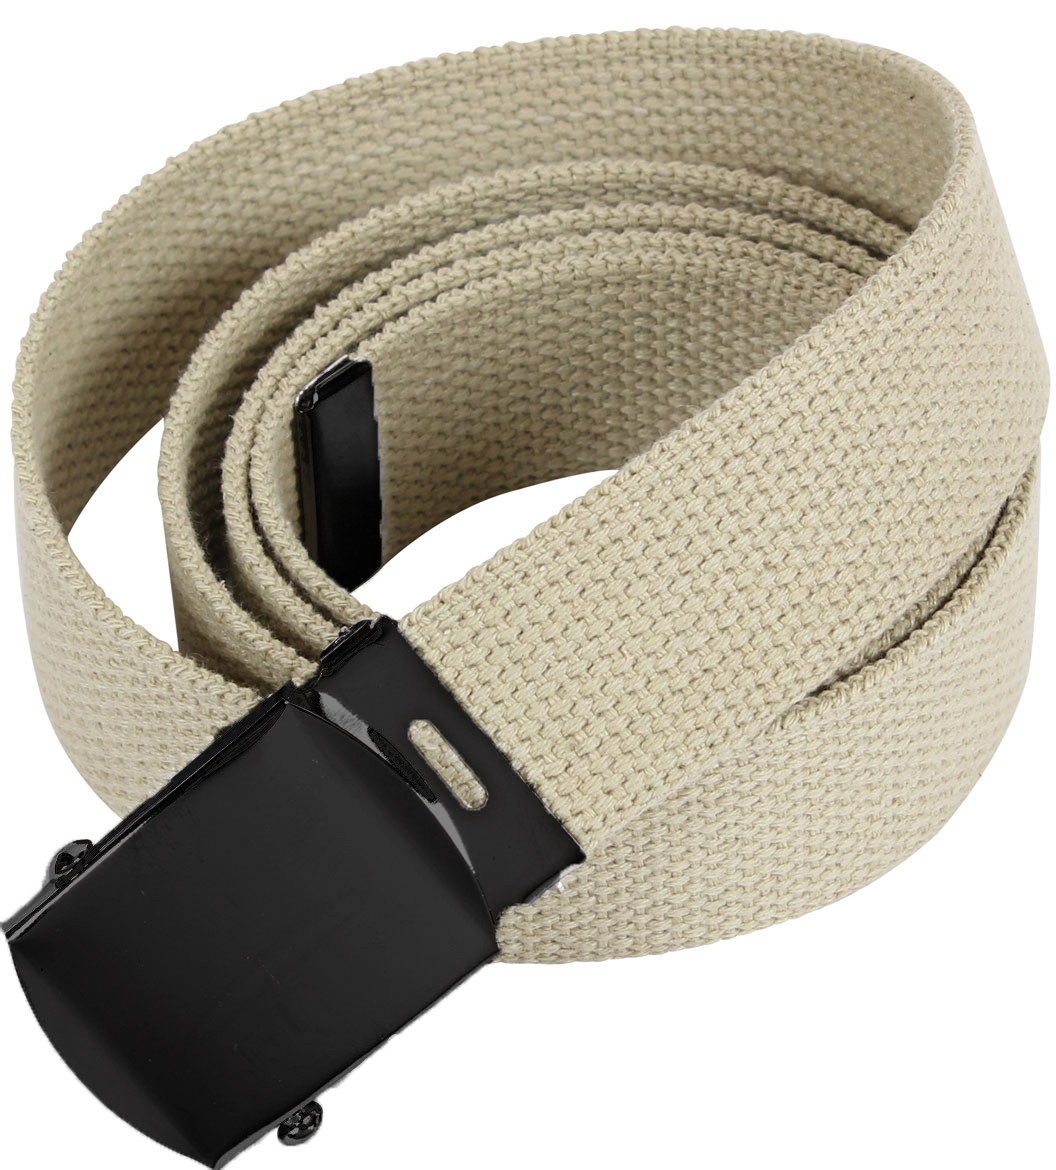 Khaki Military Web Belt with Black Buckle 602bdf73999